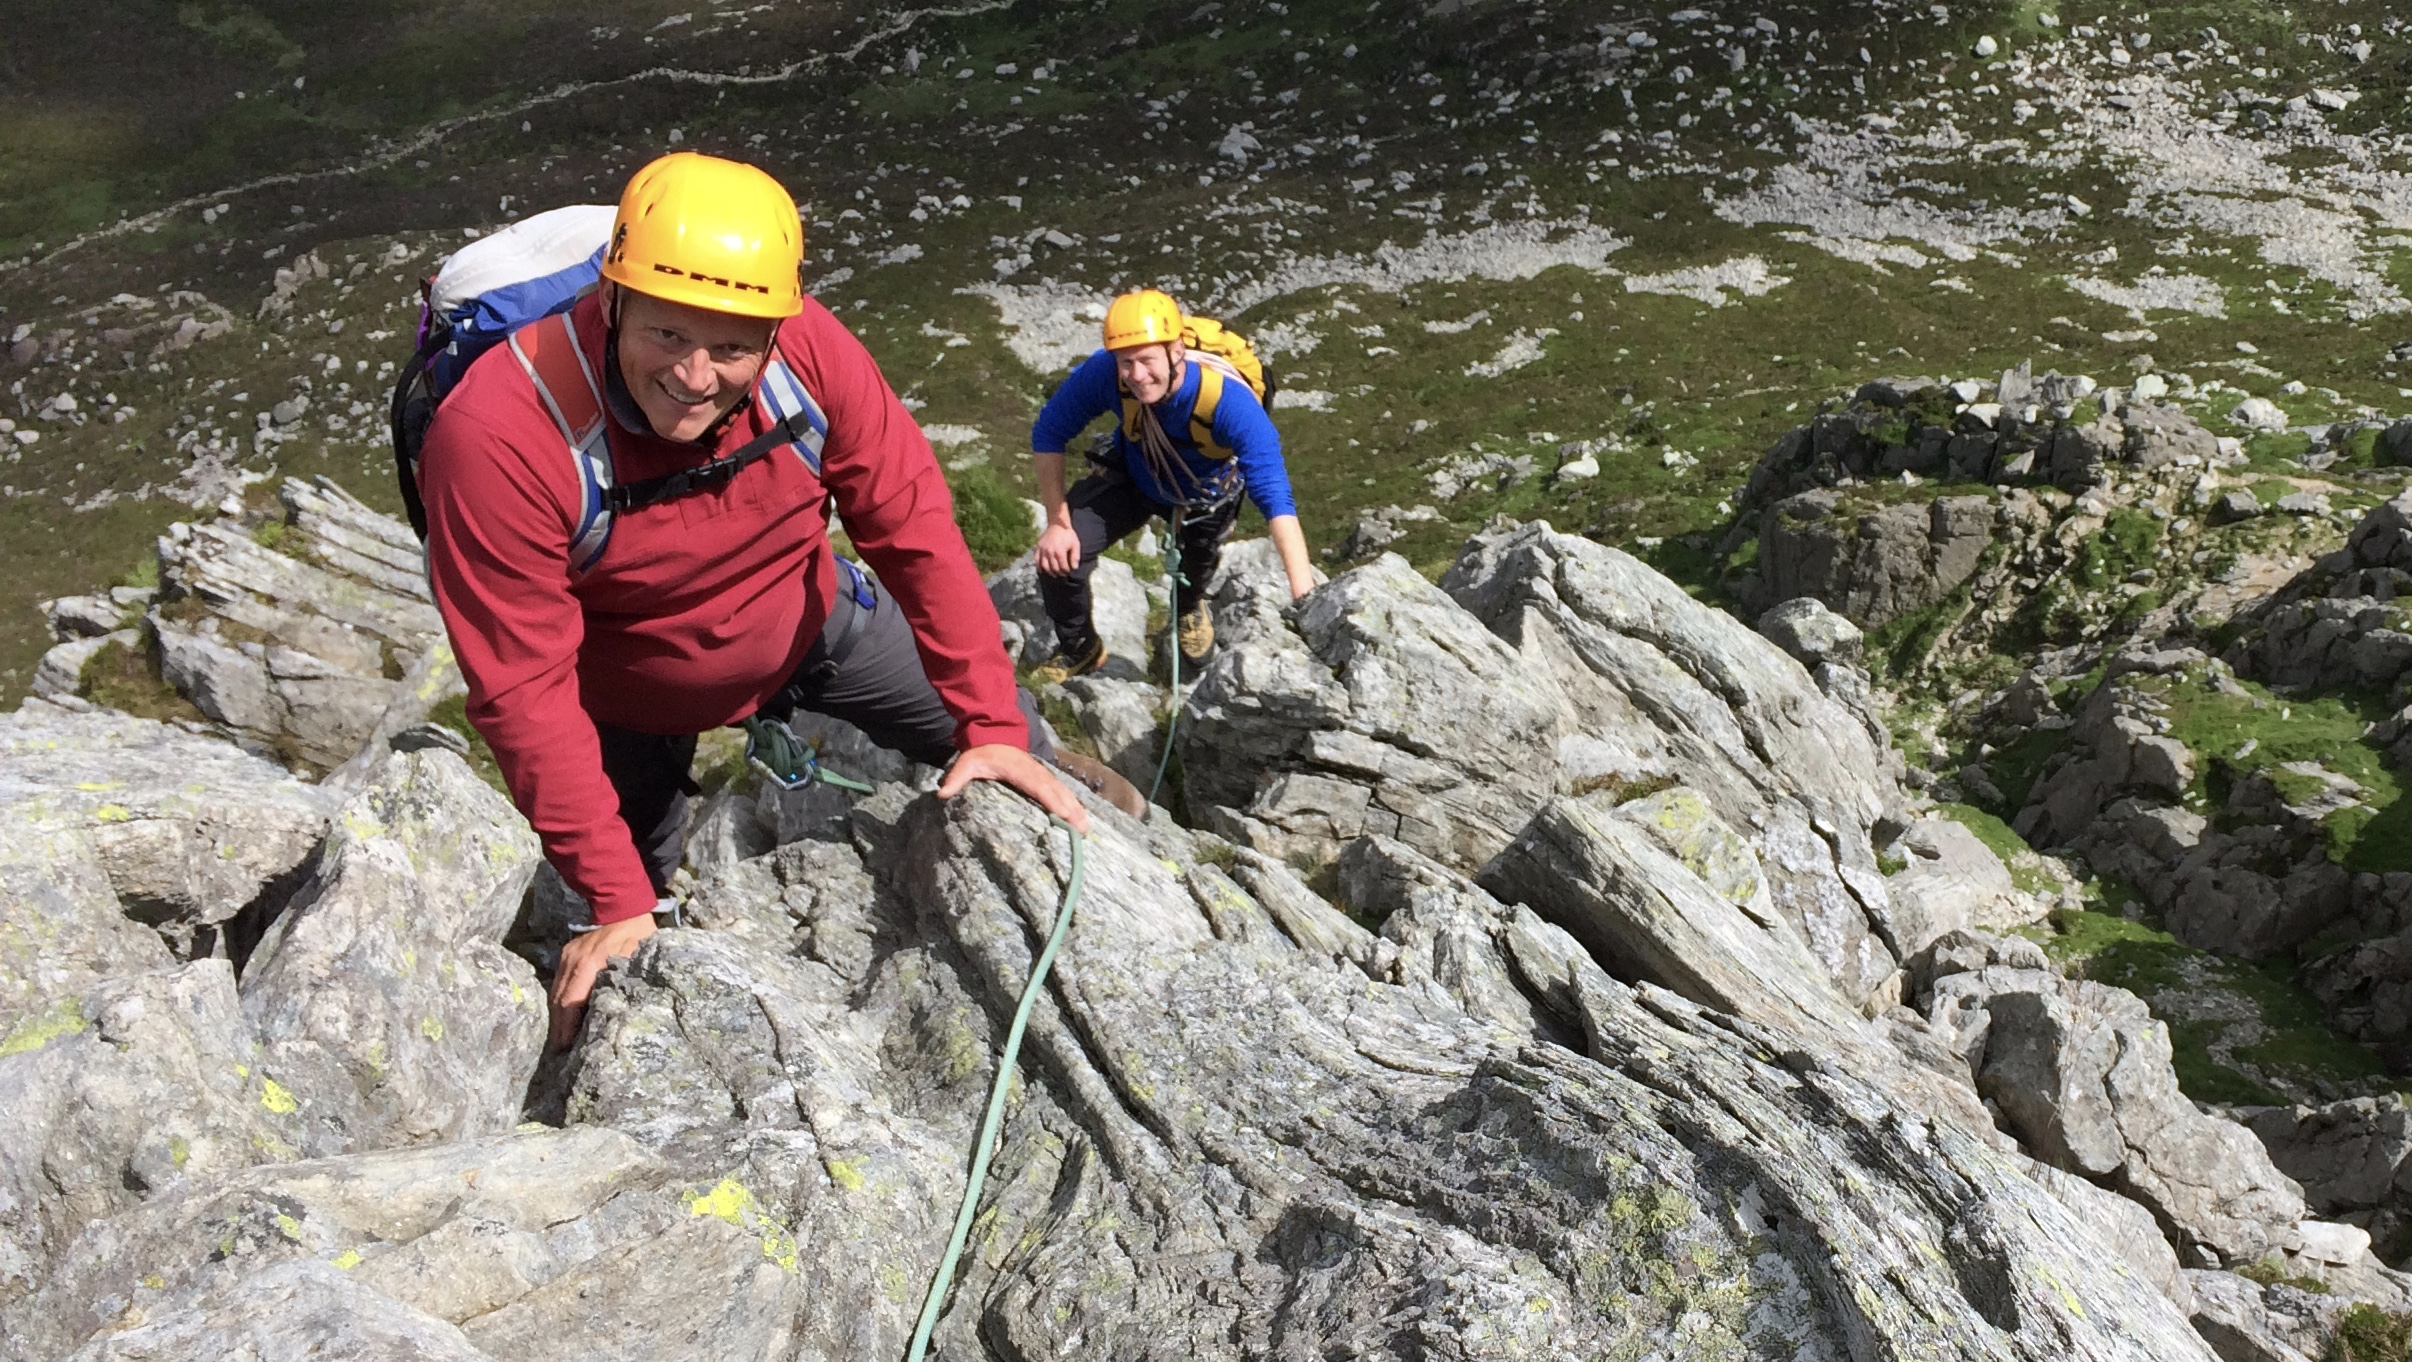 2 climbers scrambling up a rocky ridge in North Wales